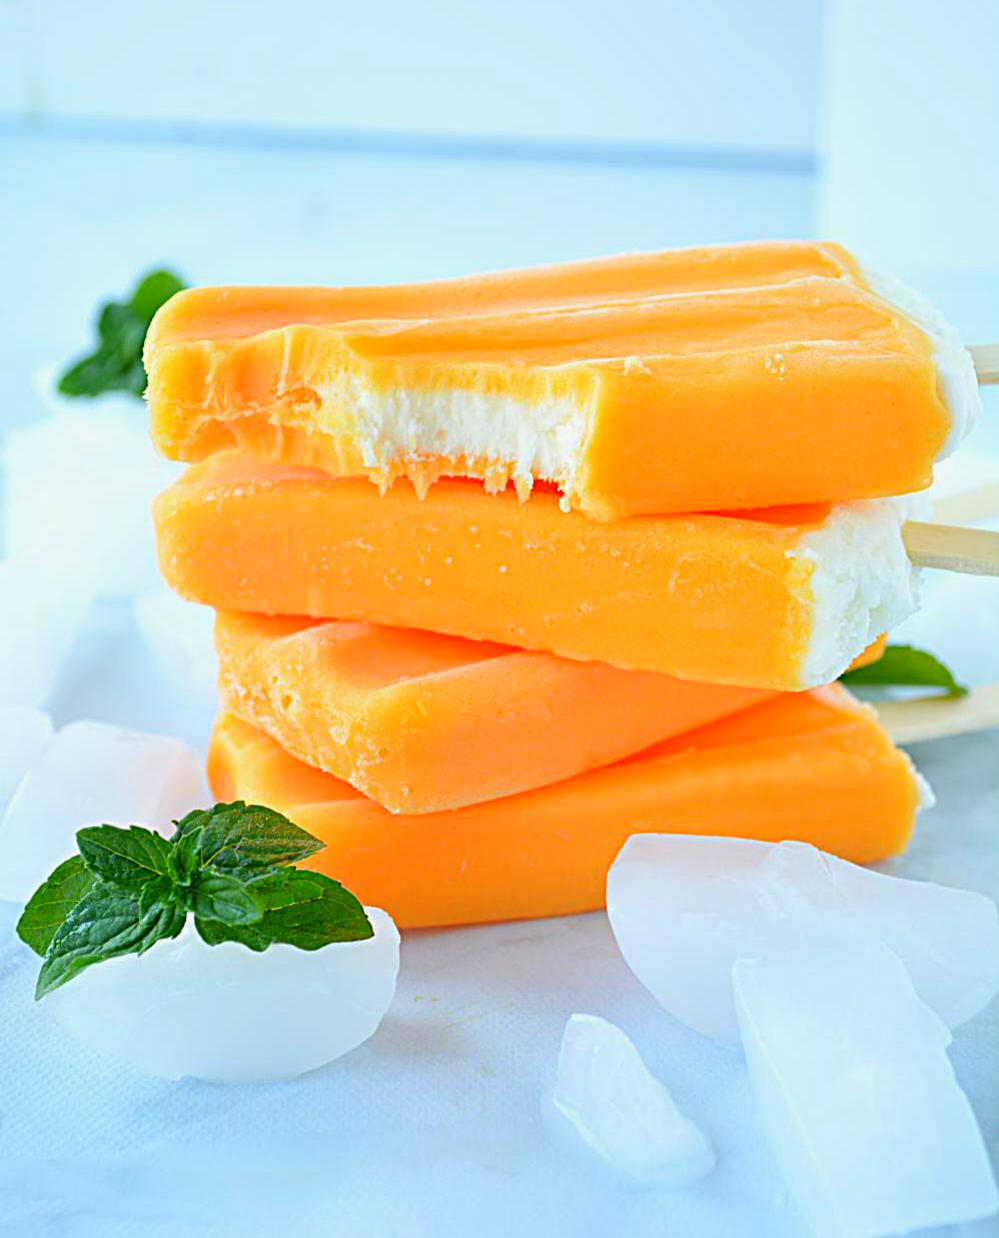 No Cook Mango Popsicle or Mango Bar | ruchiskitchen.com